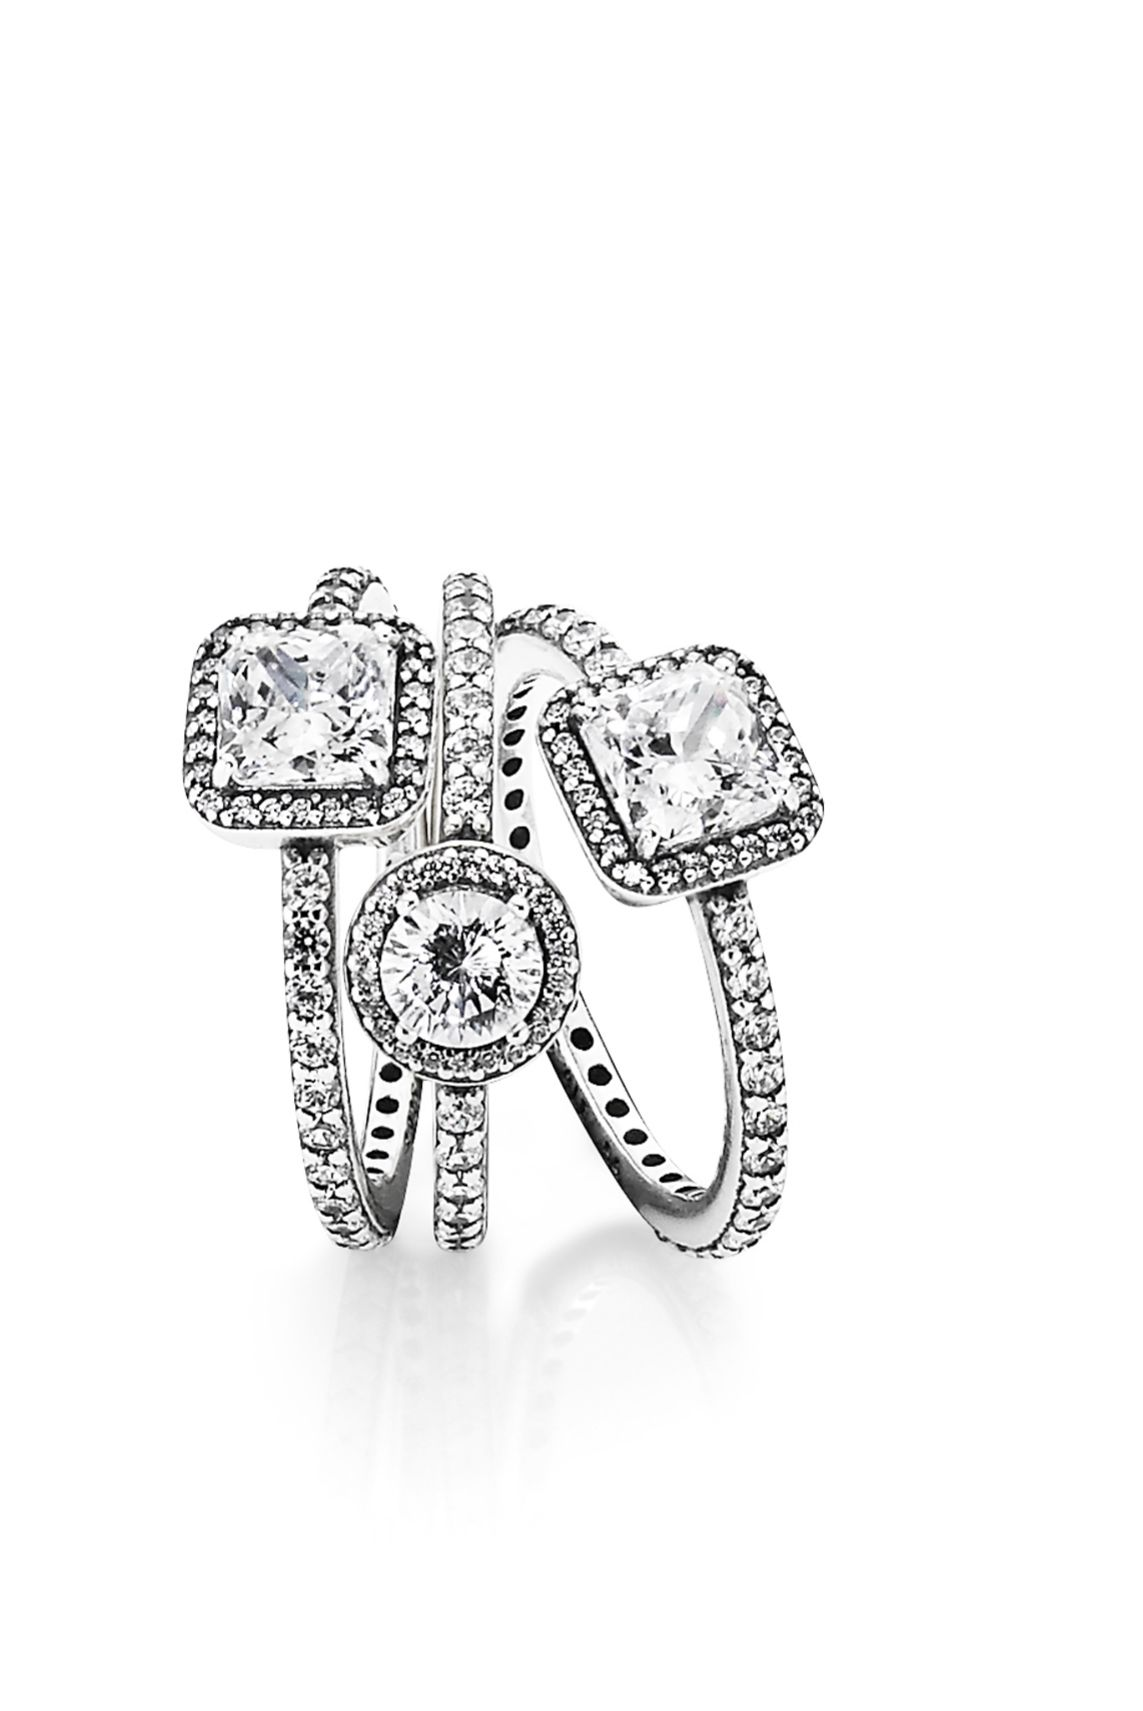 fffbf0f99 Create a stunning ring stack with PANDORA's timeless sterling silver rings.  #PANDORAring